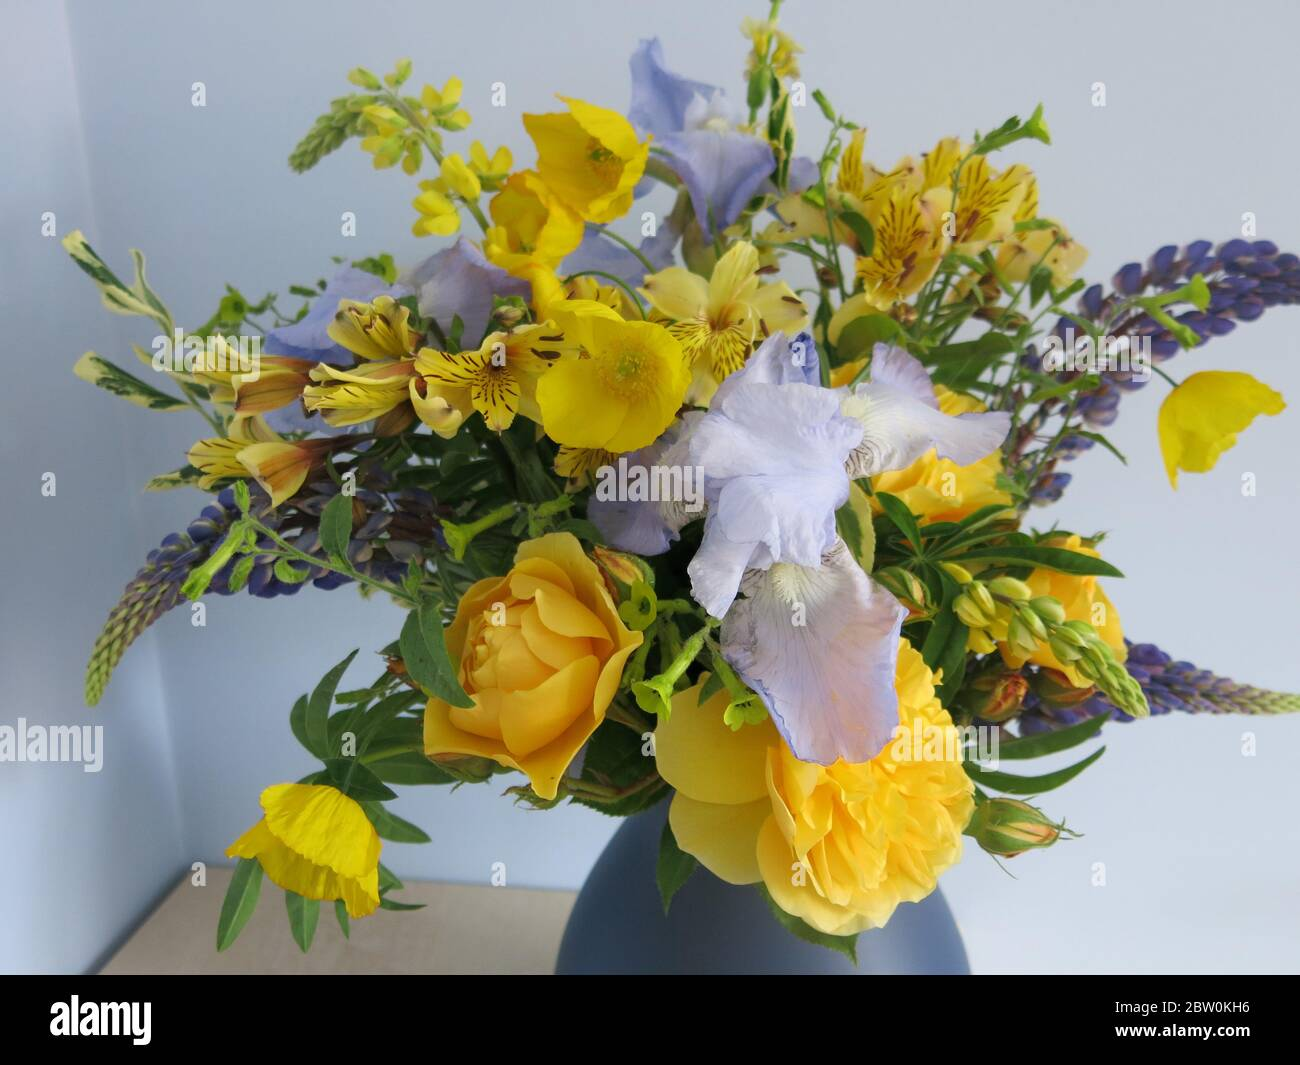 Floristry At Home With A Flower Arrangement Of Cut Flowers From An English Garden Iris Roses And Lupins In Shades Of Blue And Yellow Stock Photo Alamy